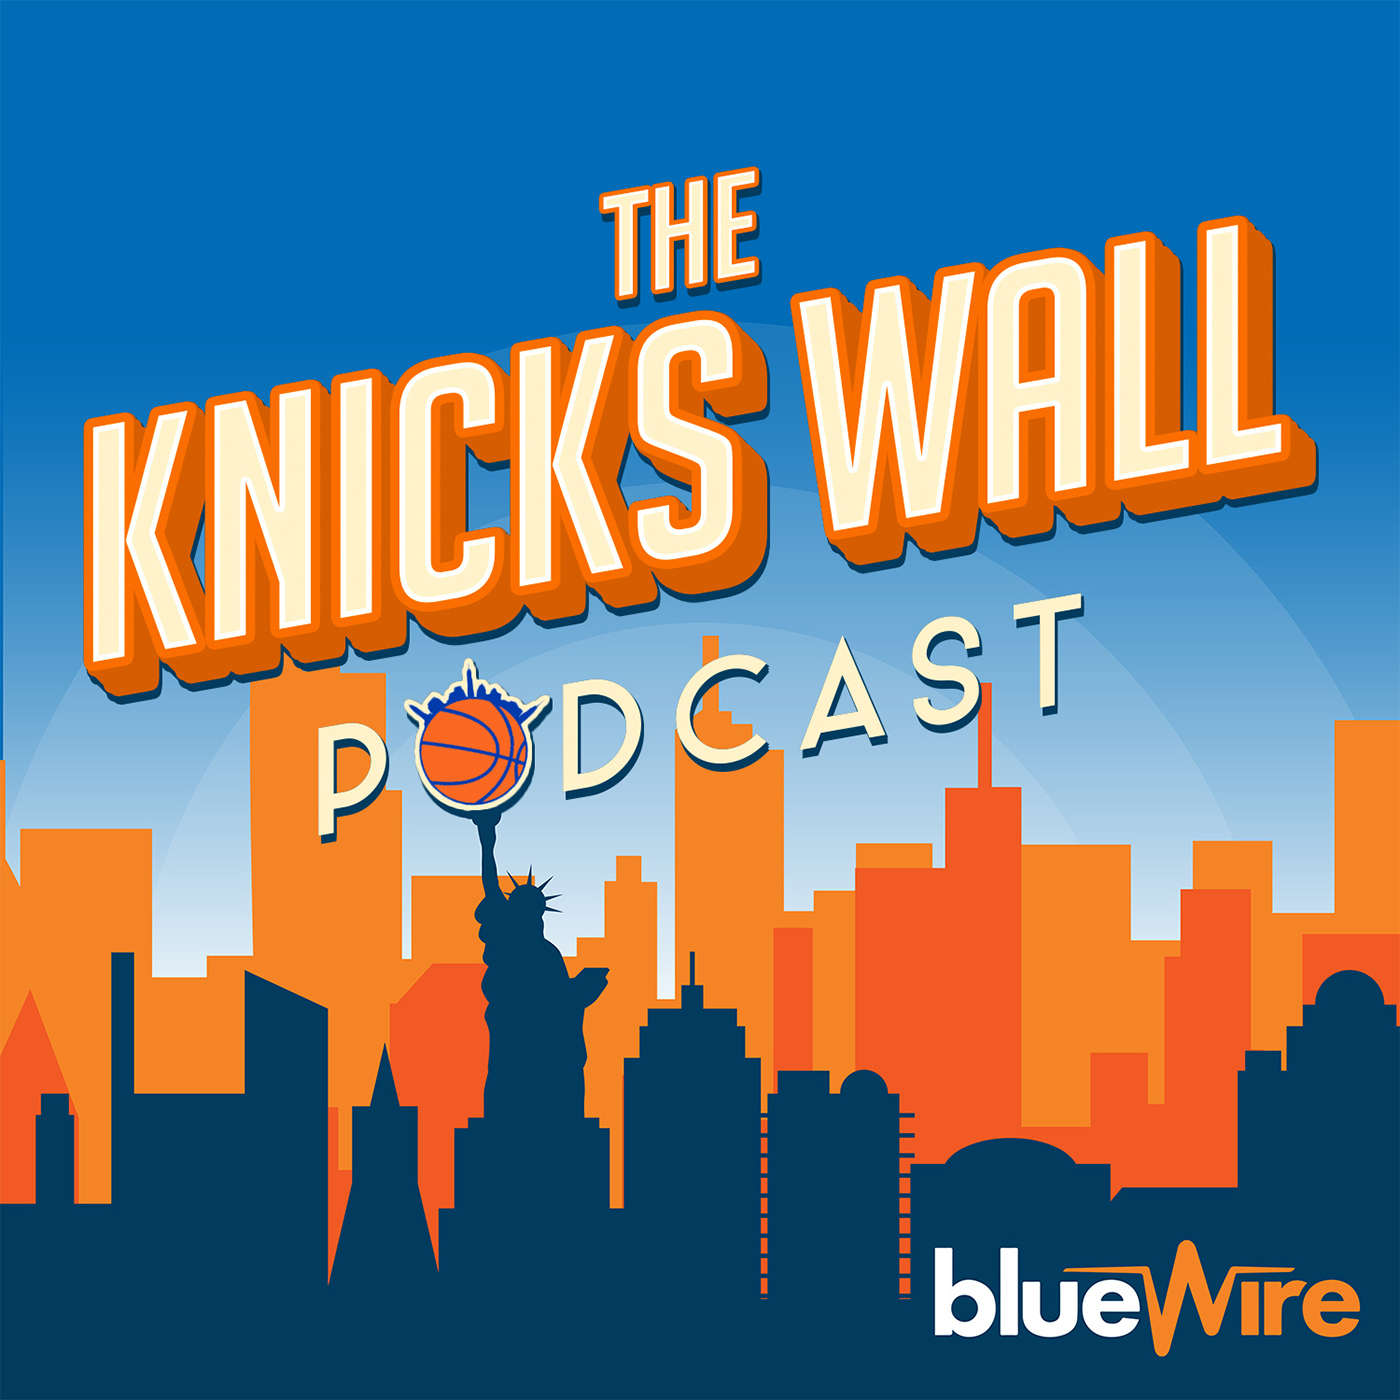 The Knicks Wall Podcast